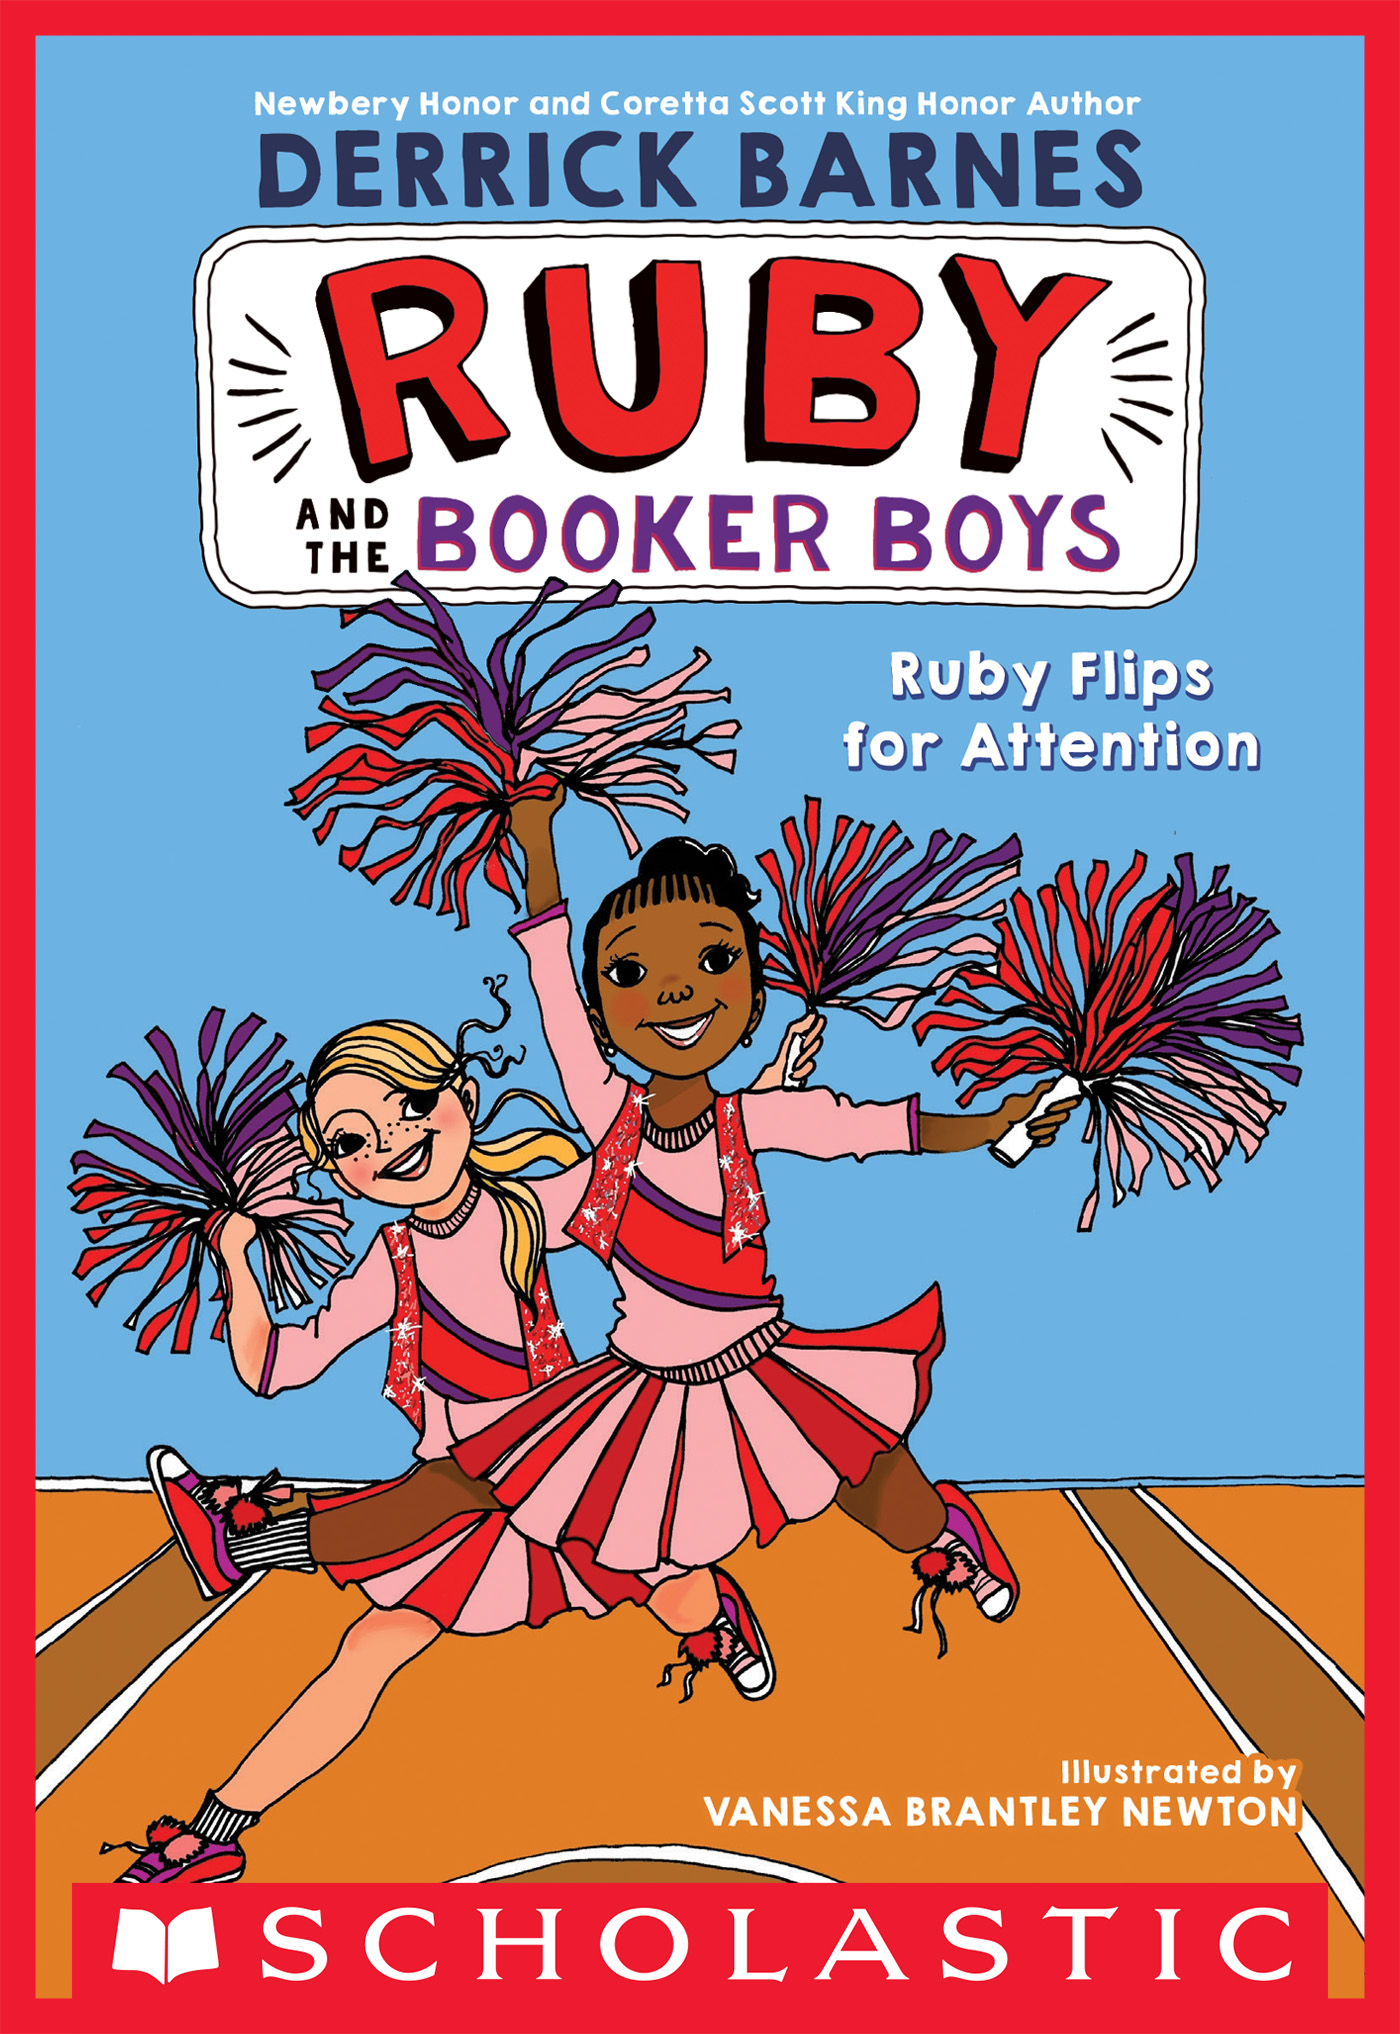 Ruby Flips for Attention (Ruby and the Booker Boys #4)